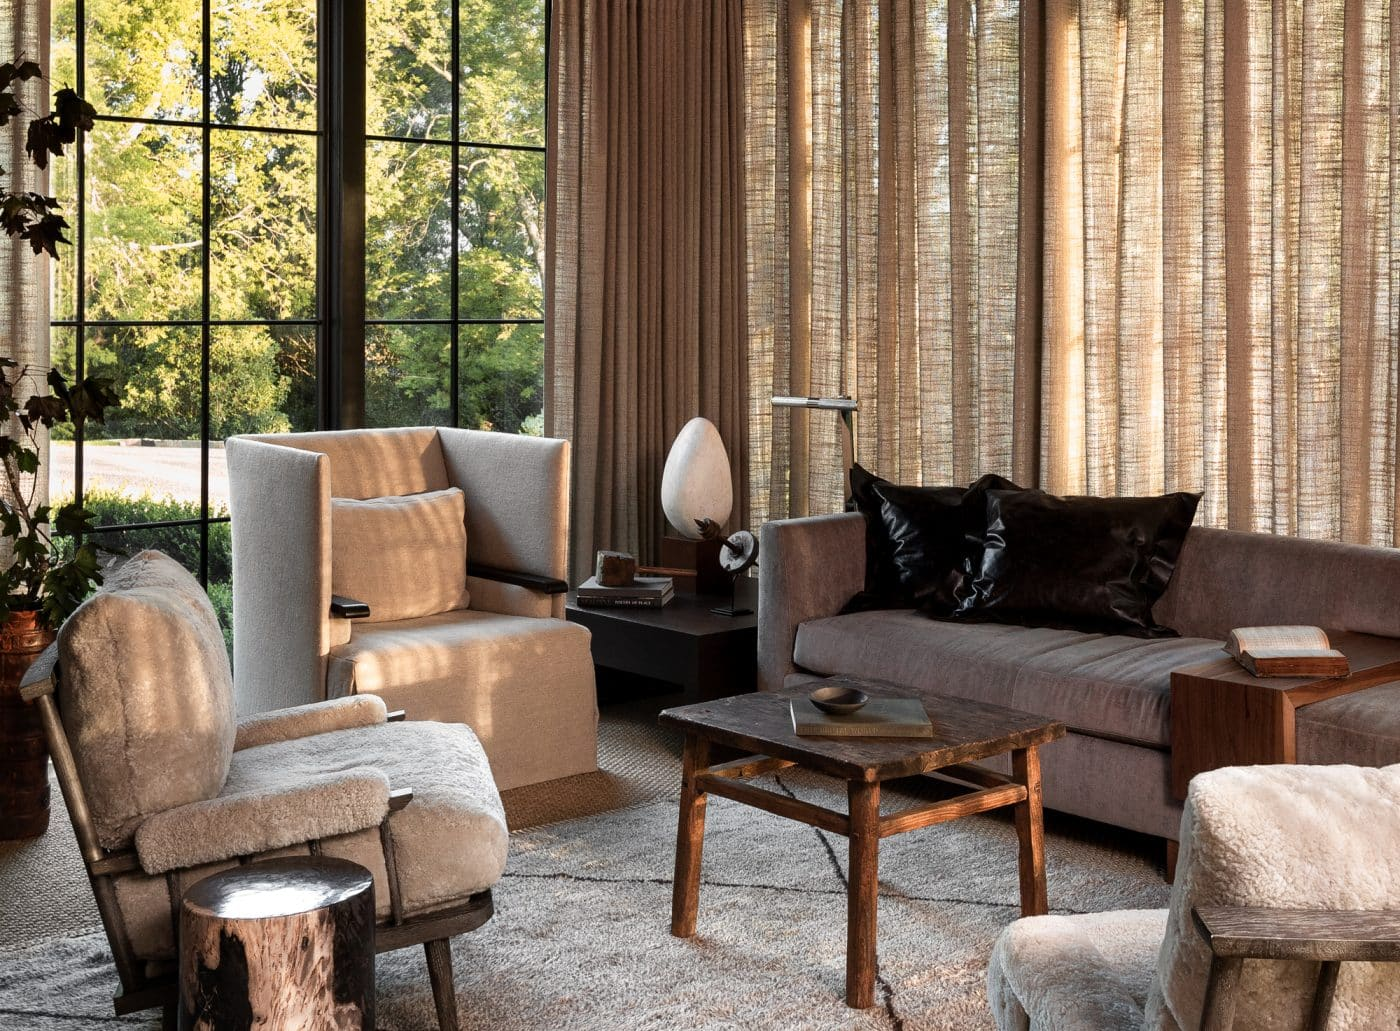 Living room designed by Sean Anderson